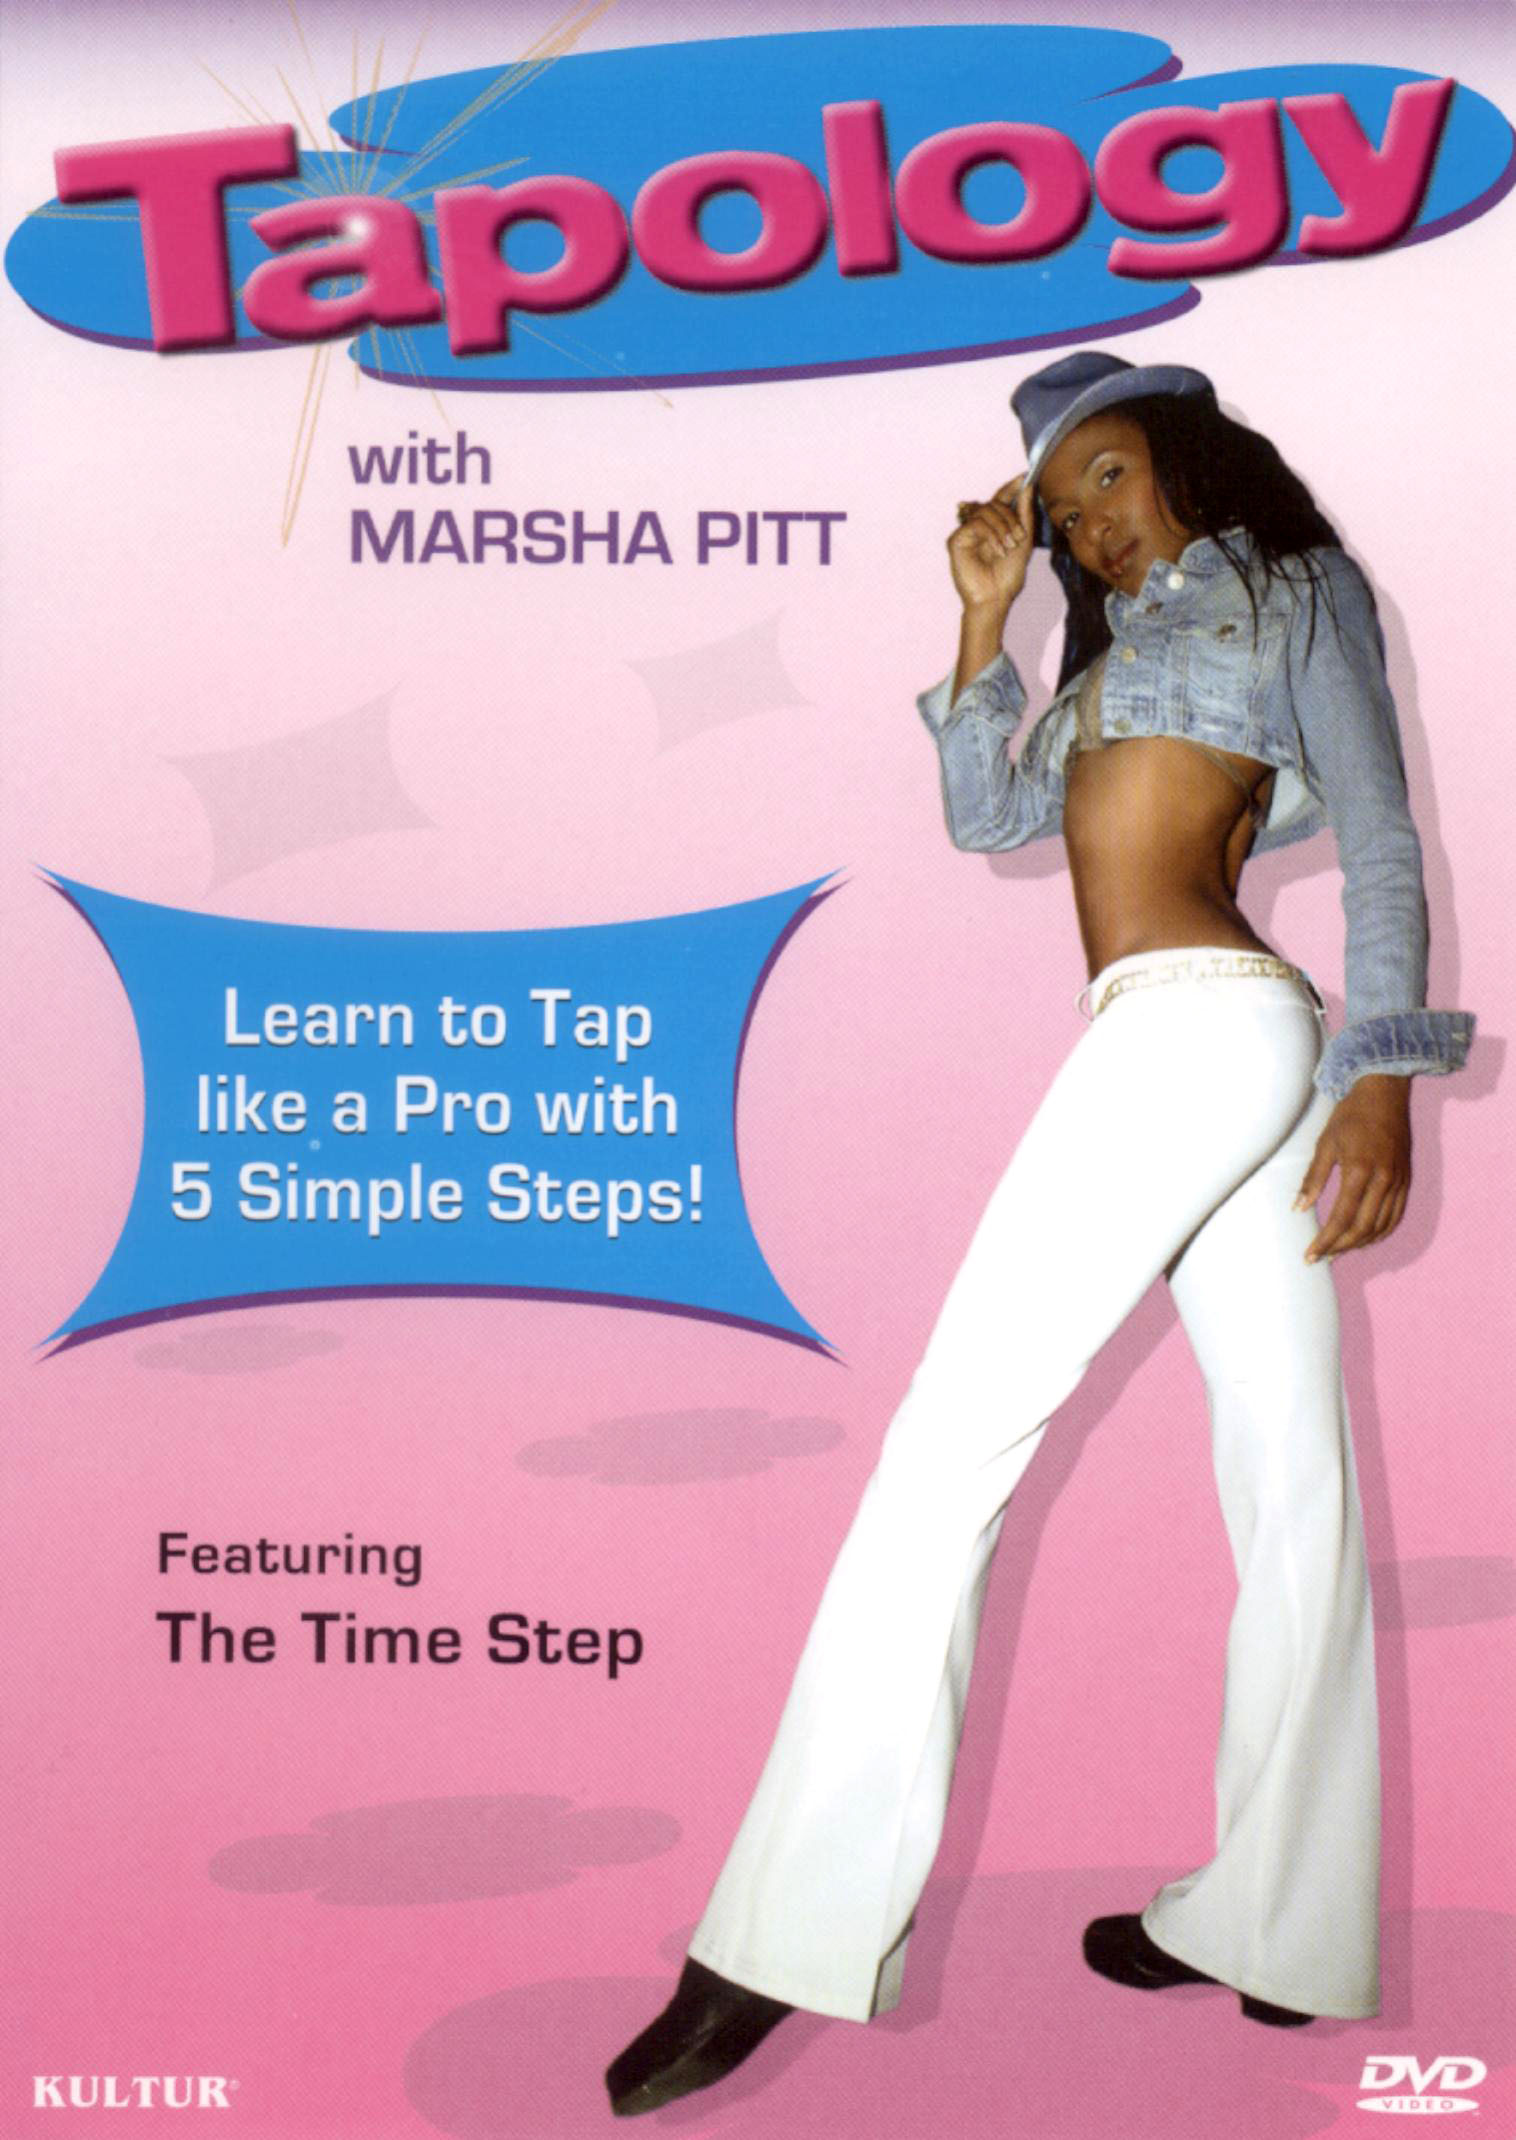 Tapology with Marsha Pitt